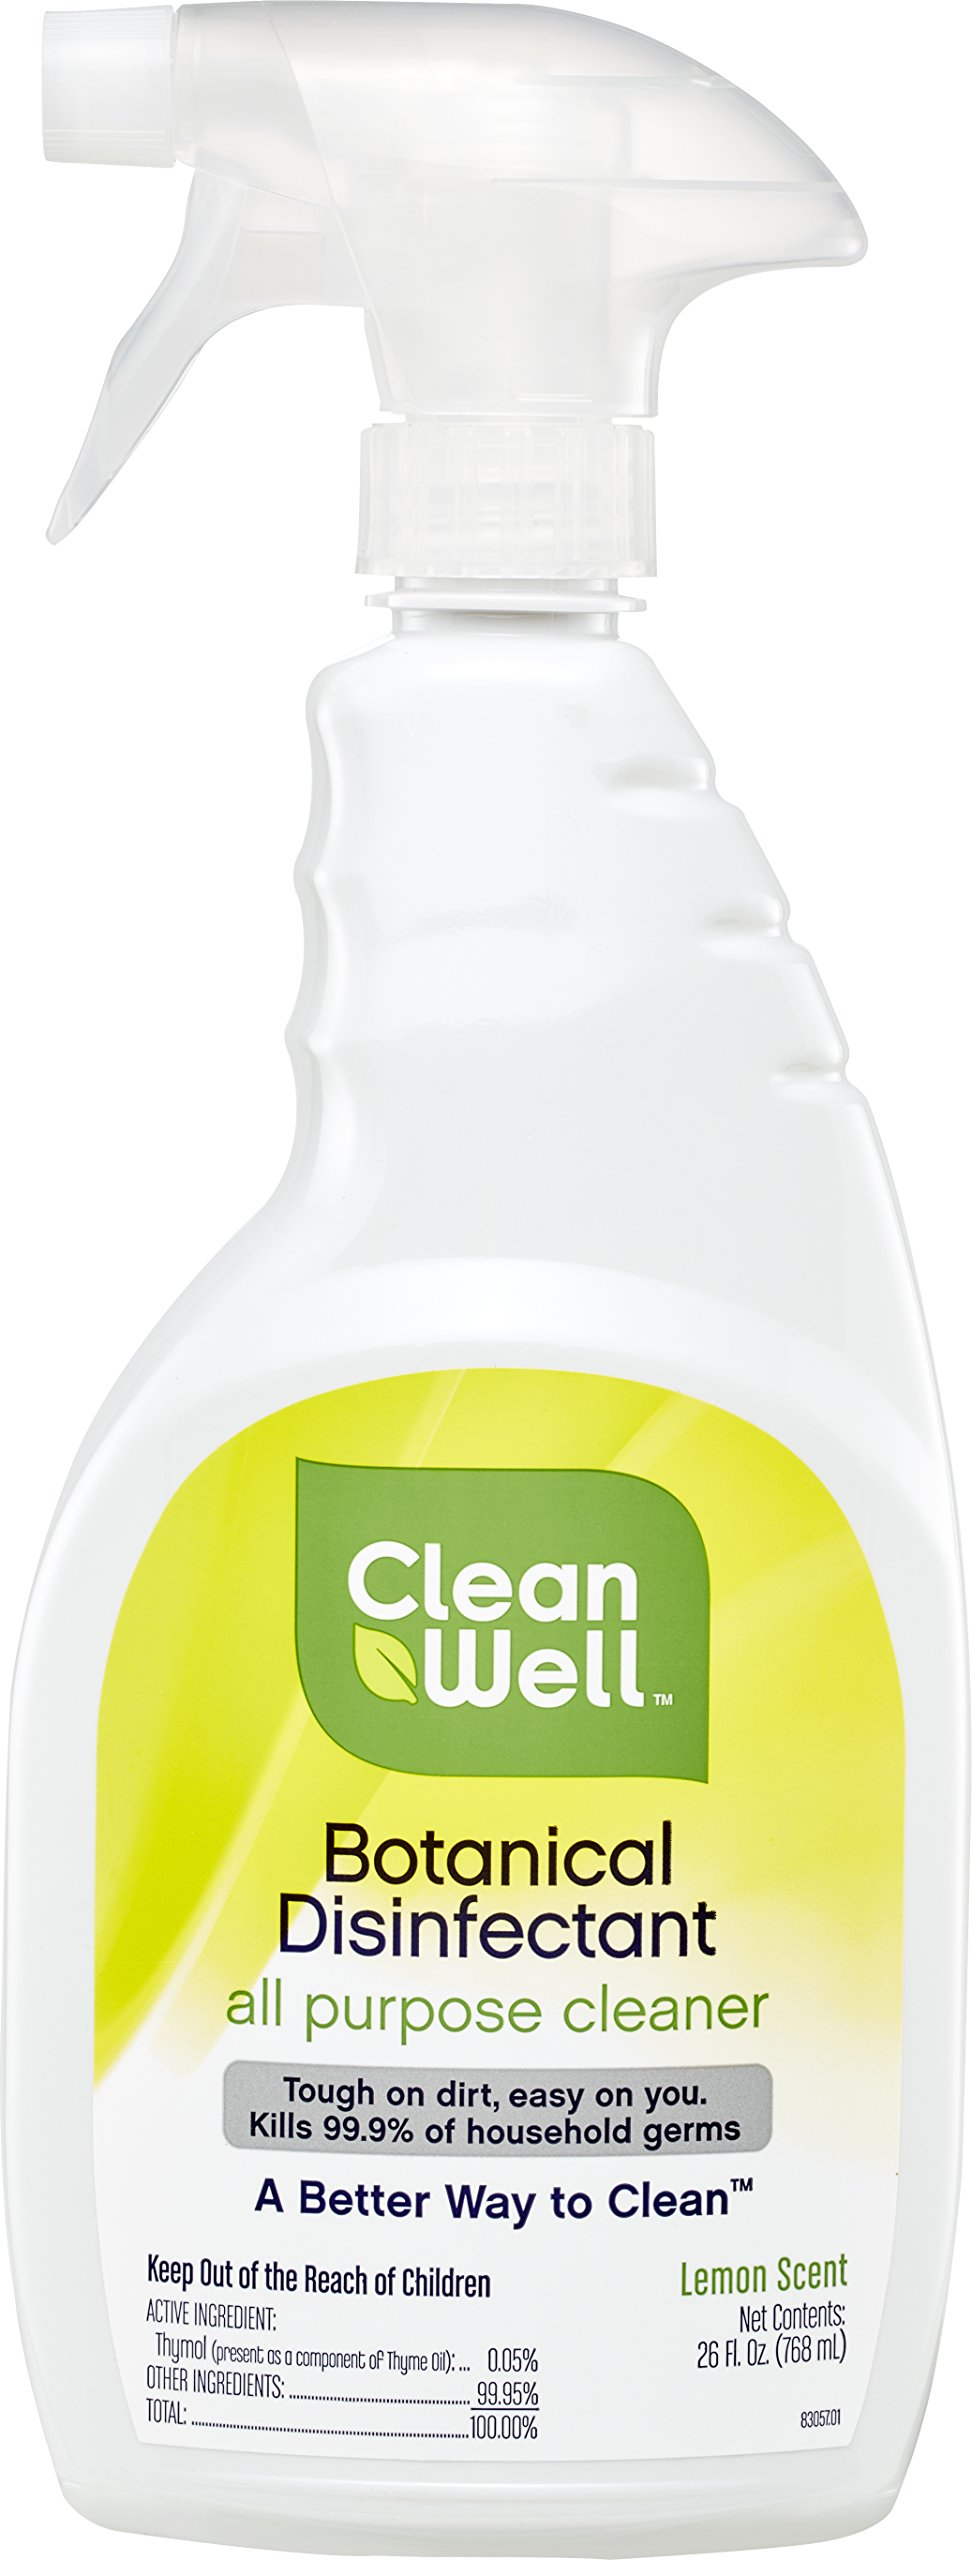 Cleanwell botanical disinfecting wipes lemon scent 35 count health personal care for Cleanwell botanical disinfectant bathroom cleaner